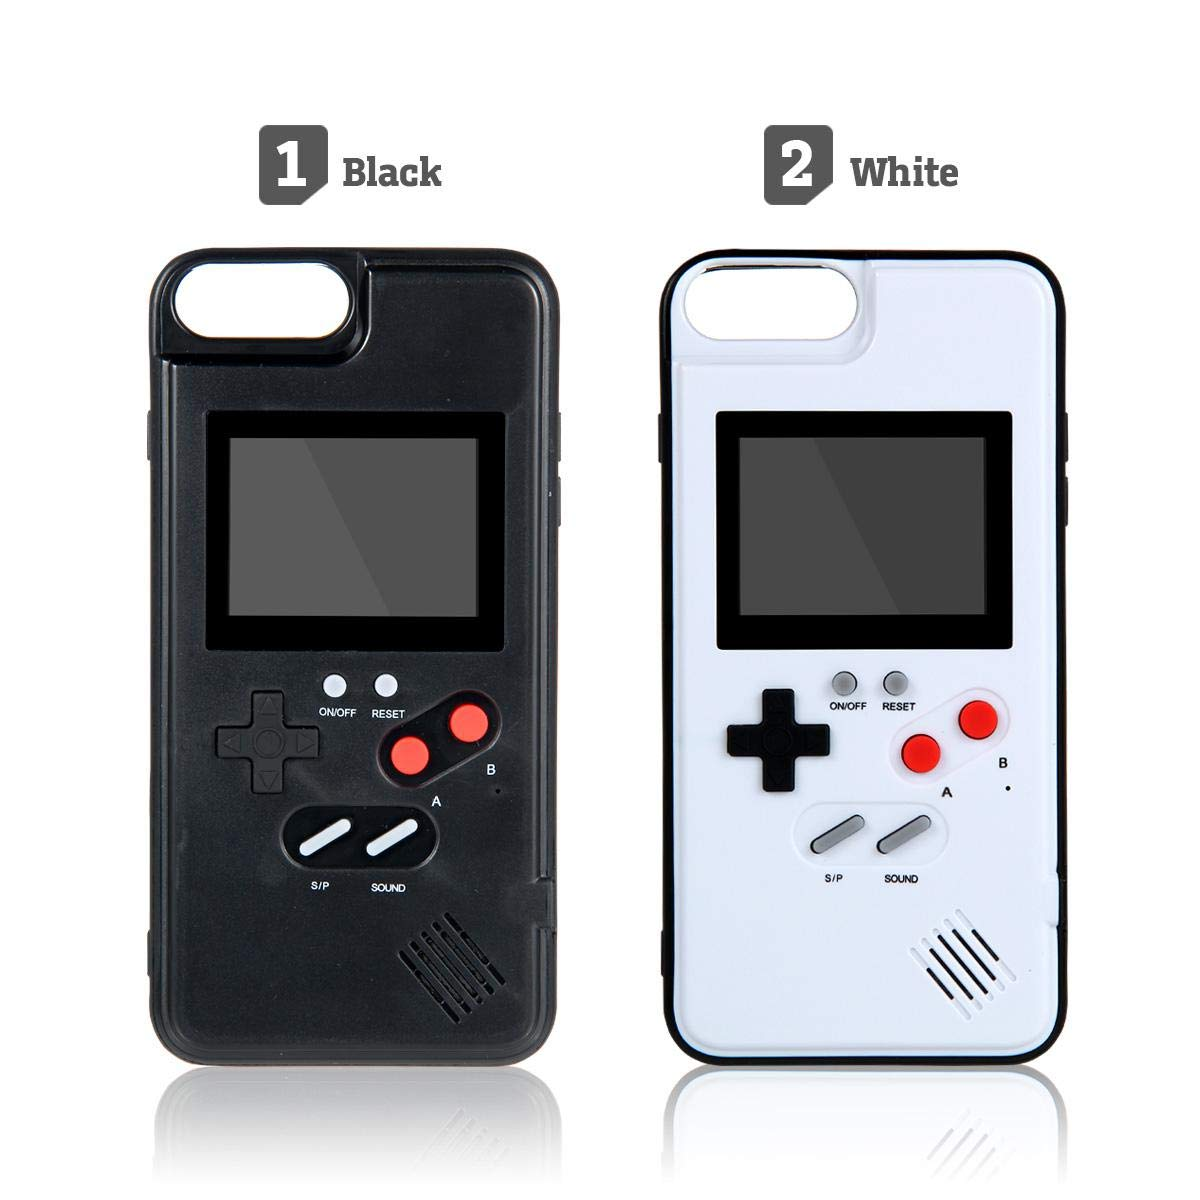 Womdee Game Console iPhone Case, Handheld Game Console Case Cover with 36 Games Phone Case (iPhone 6p/7p/8p, White) by Womdee (Image #8)